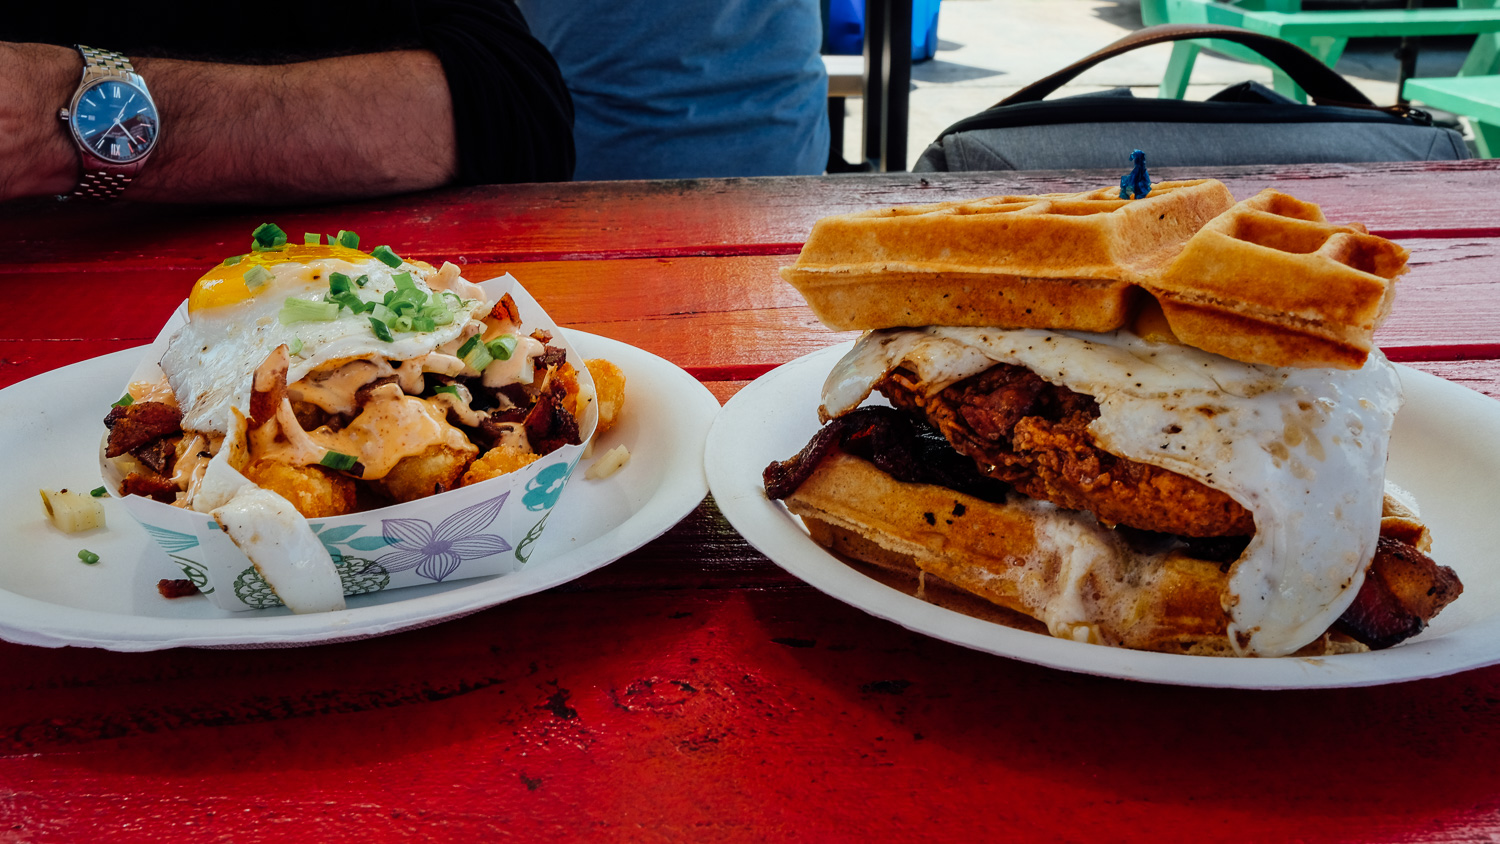 The tater tot special and chicken and waffles at Nom Kauai Food Truck.